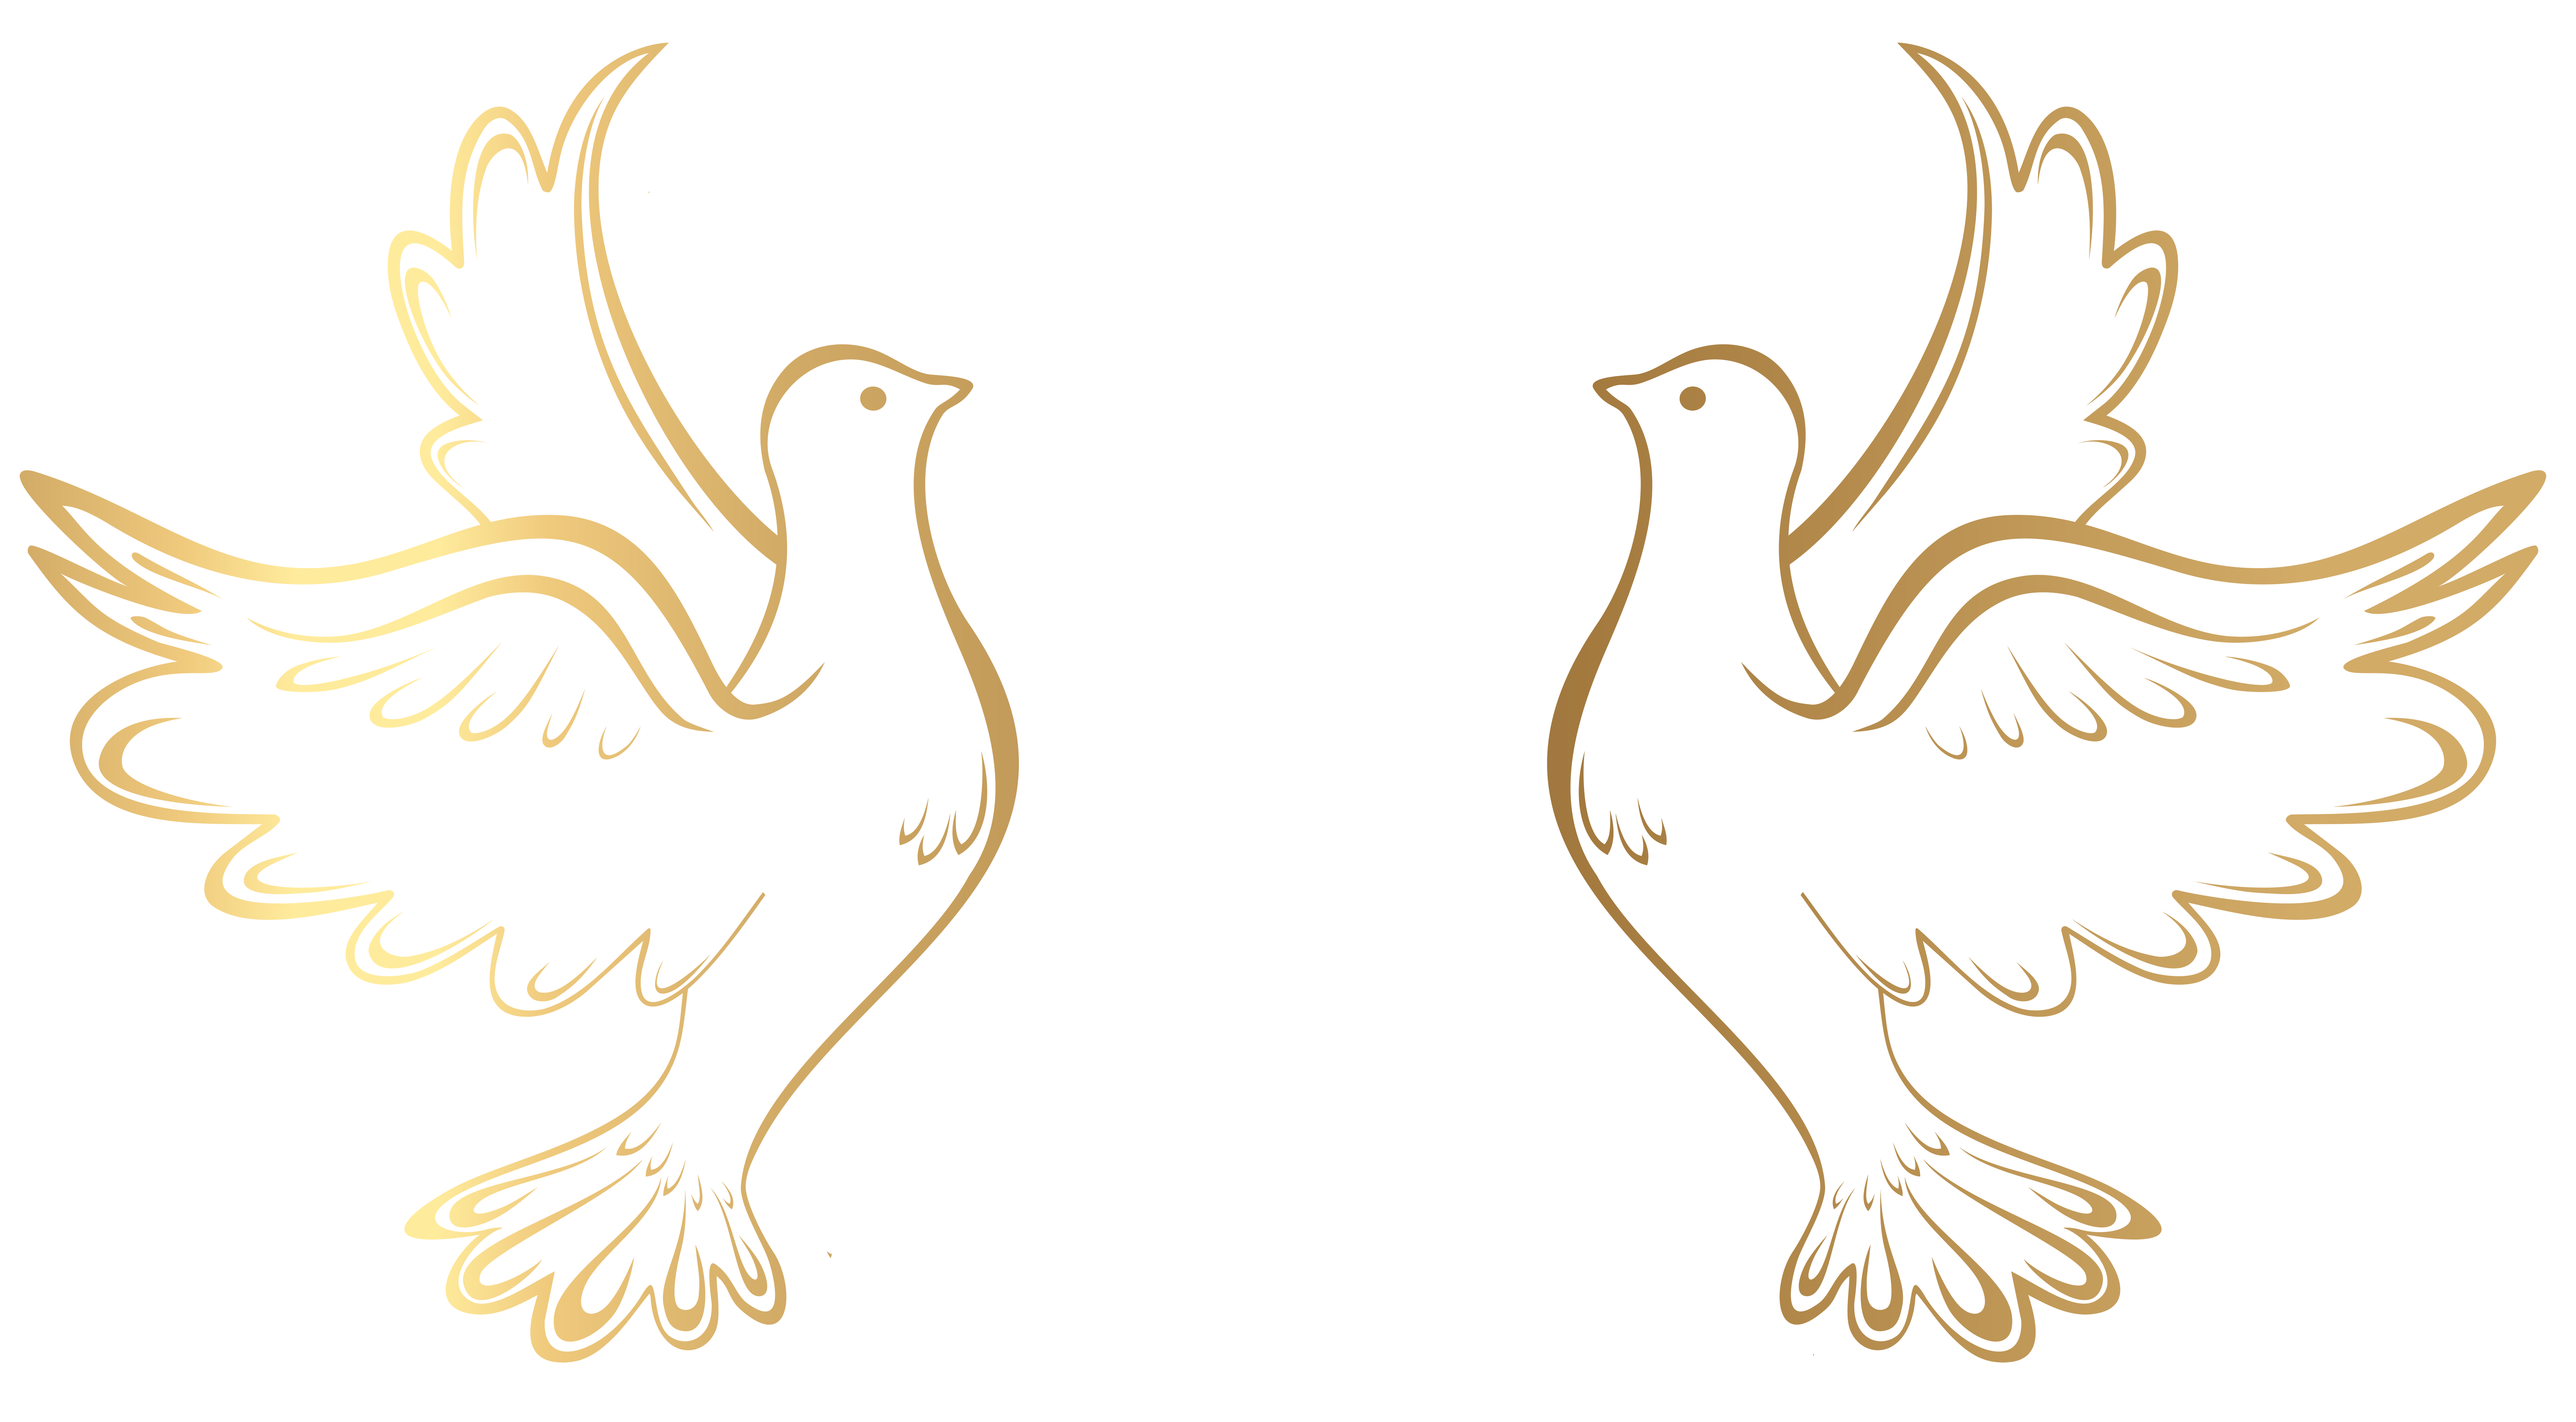 Element clipart gold decorative line Image  Doves full View